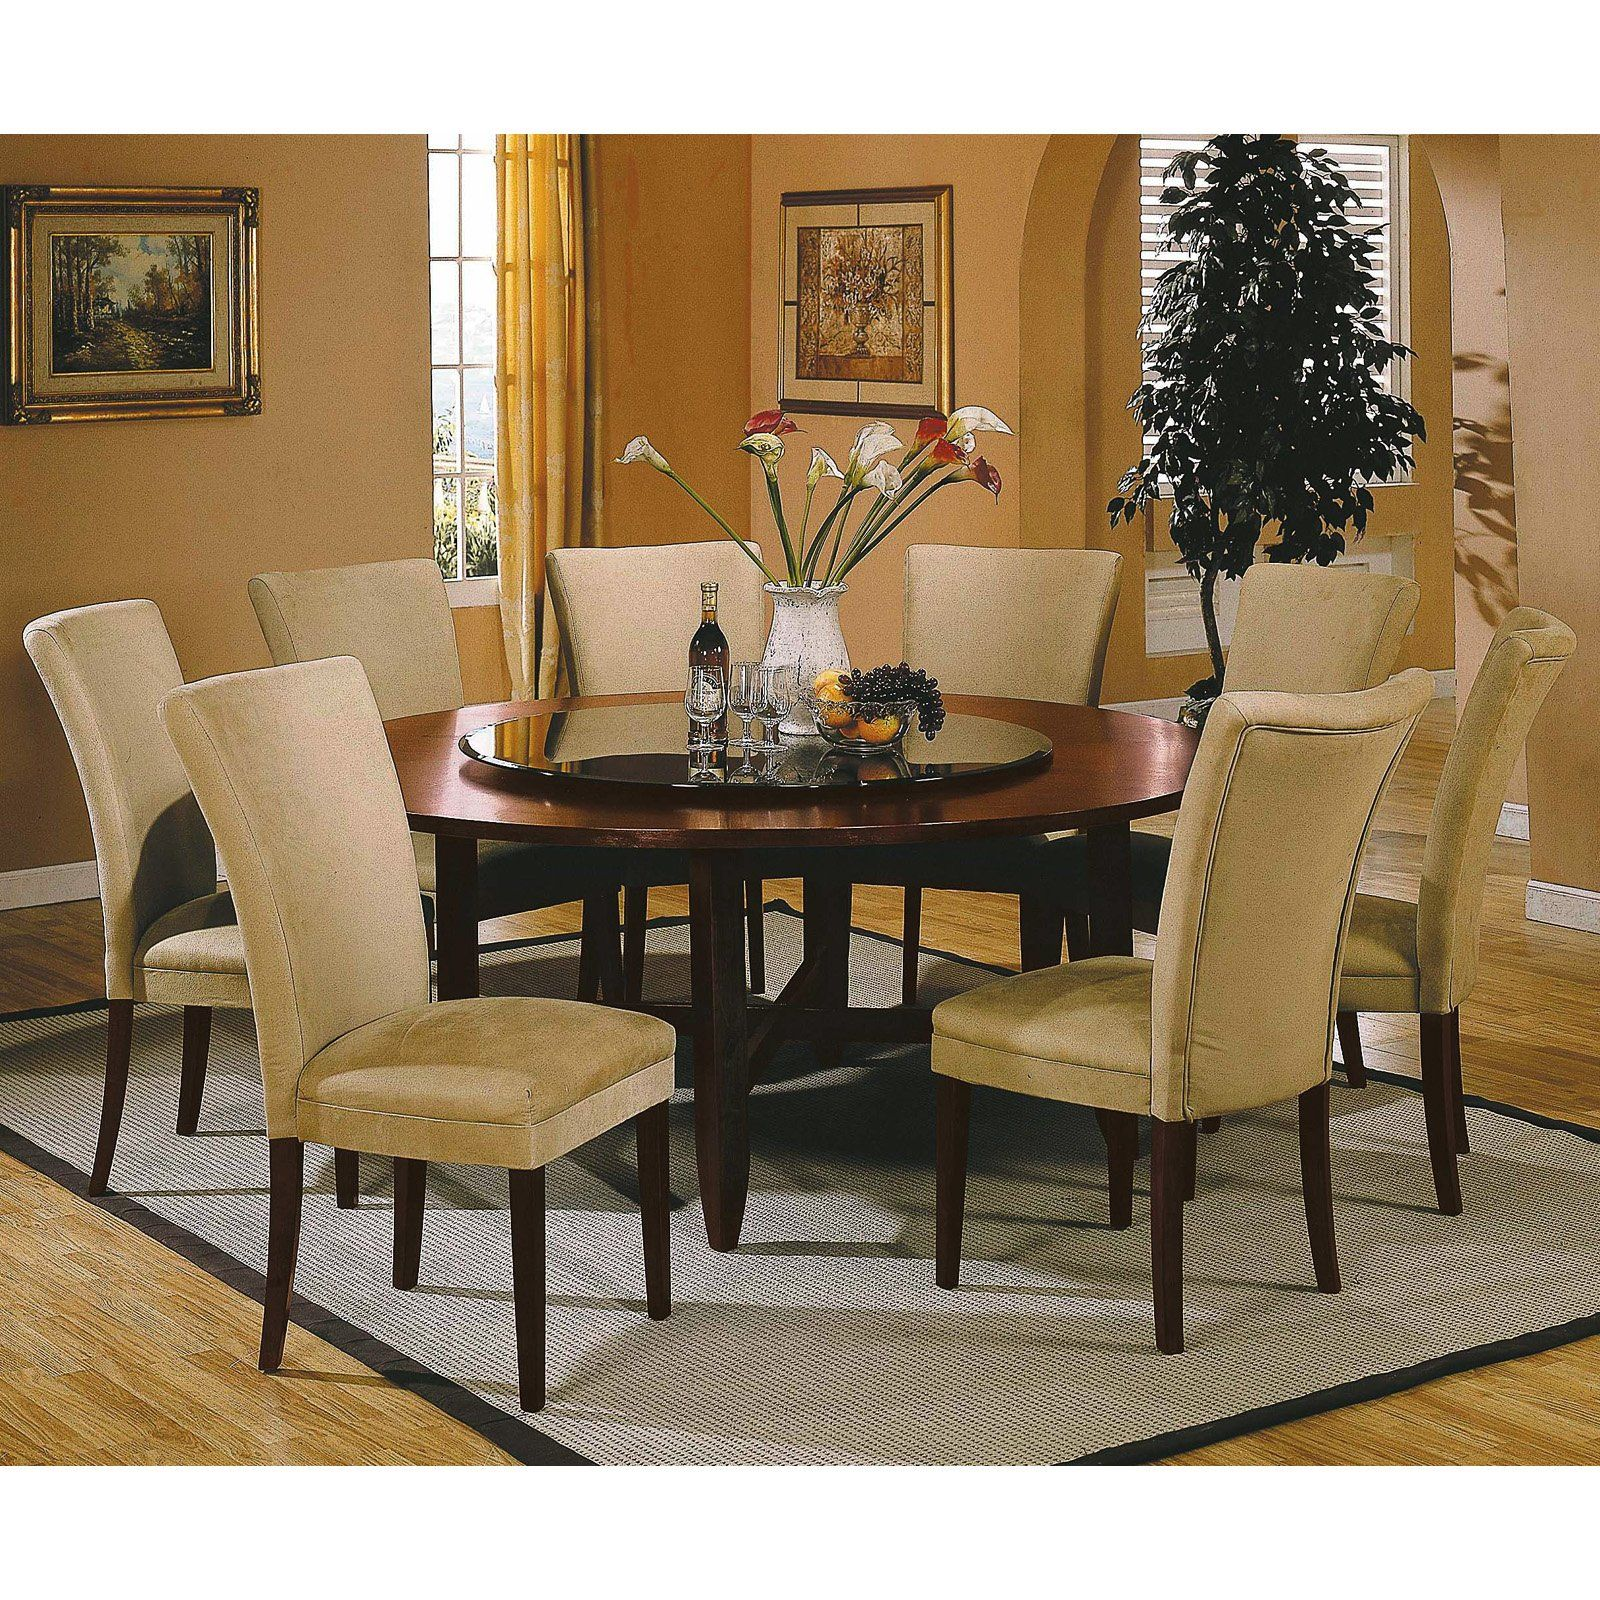 Steve silver avenue 9 piece 72 inch round dining table set for Round table 99